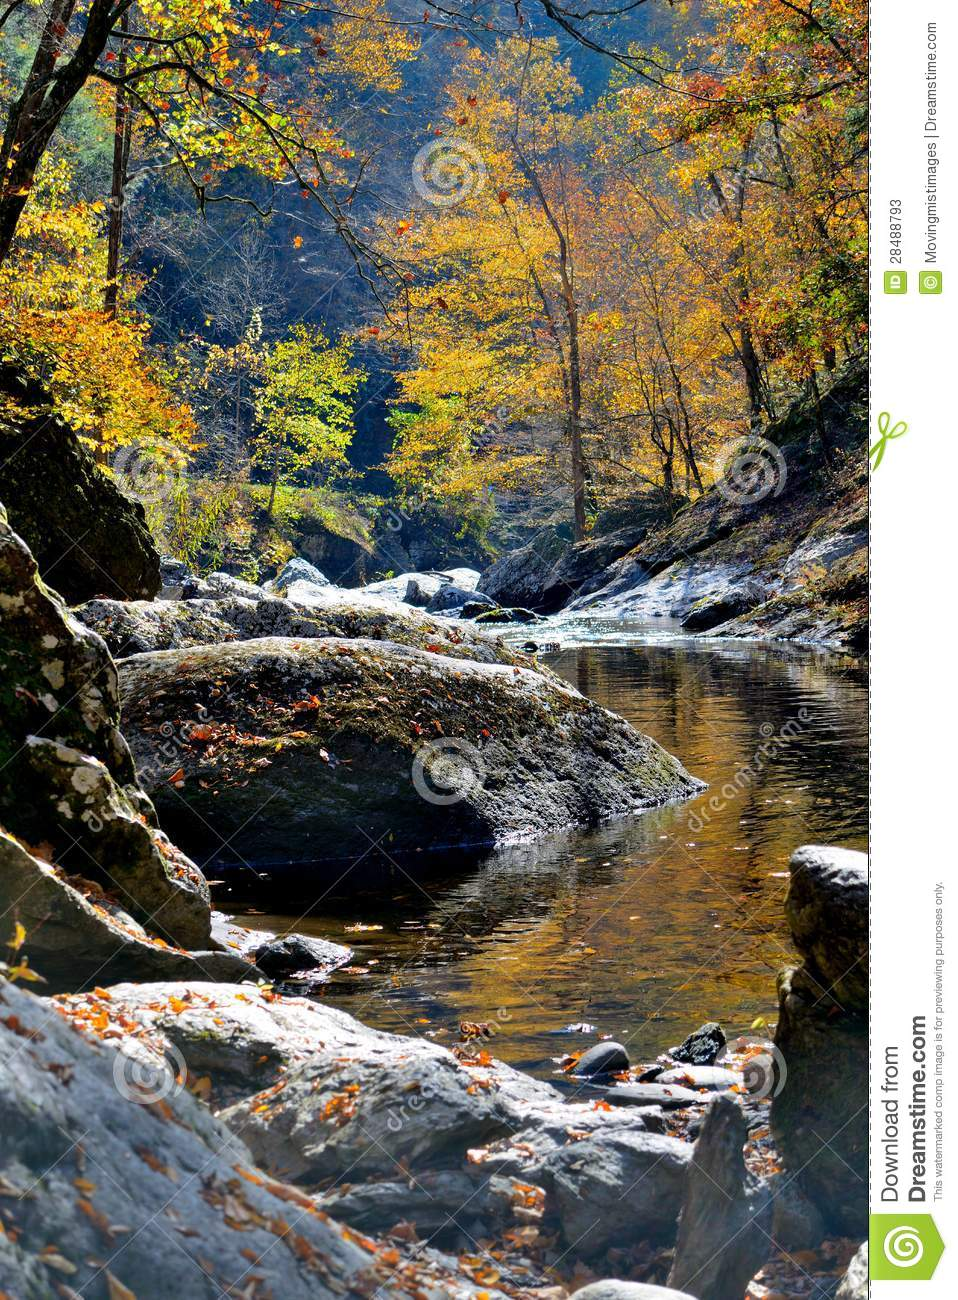 Autumn River In The Woods Stock Photos - Image: 28488793  River